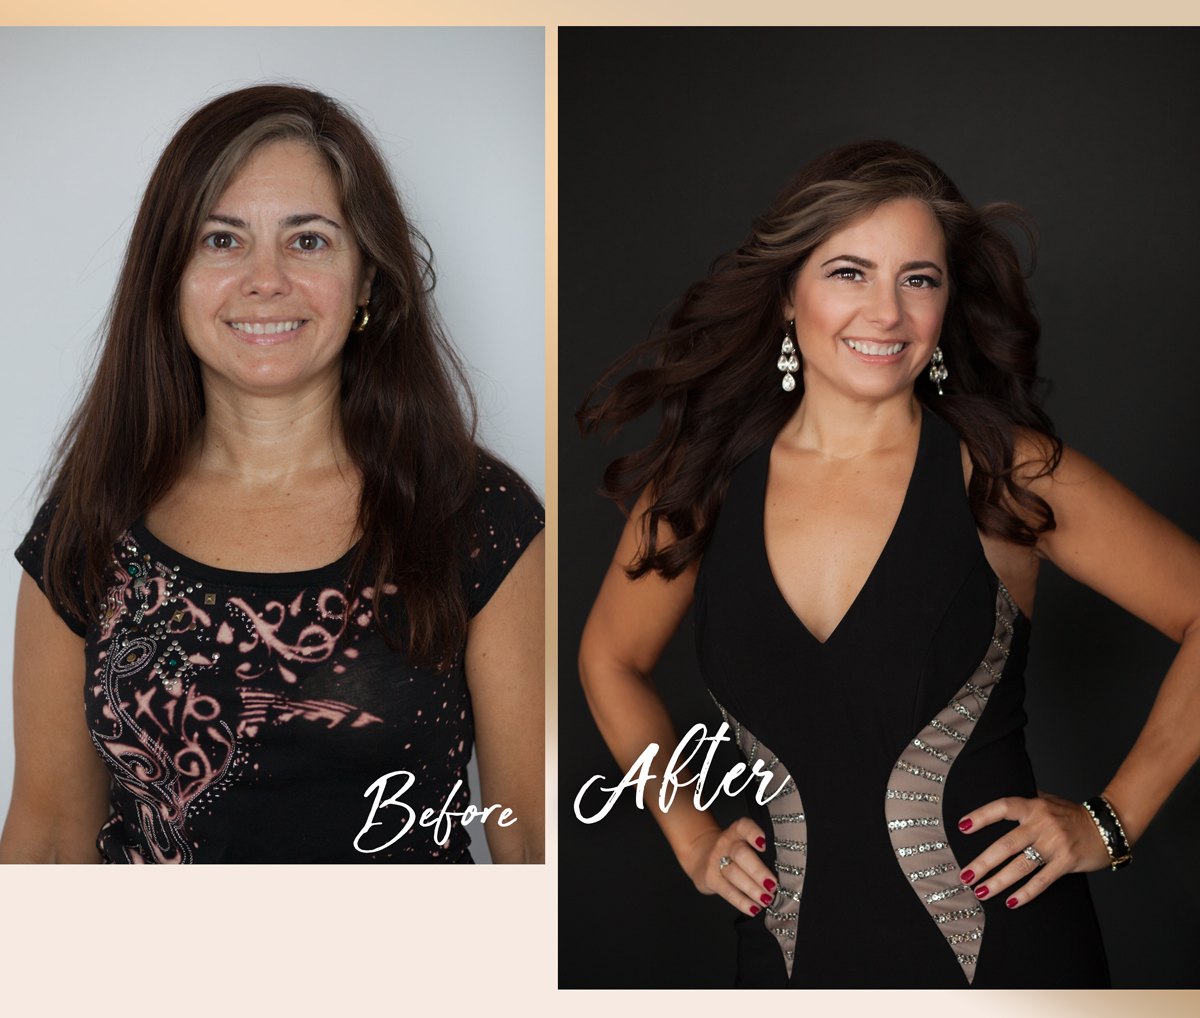 Before and After-Beauty-Women